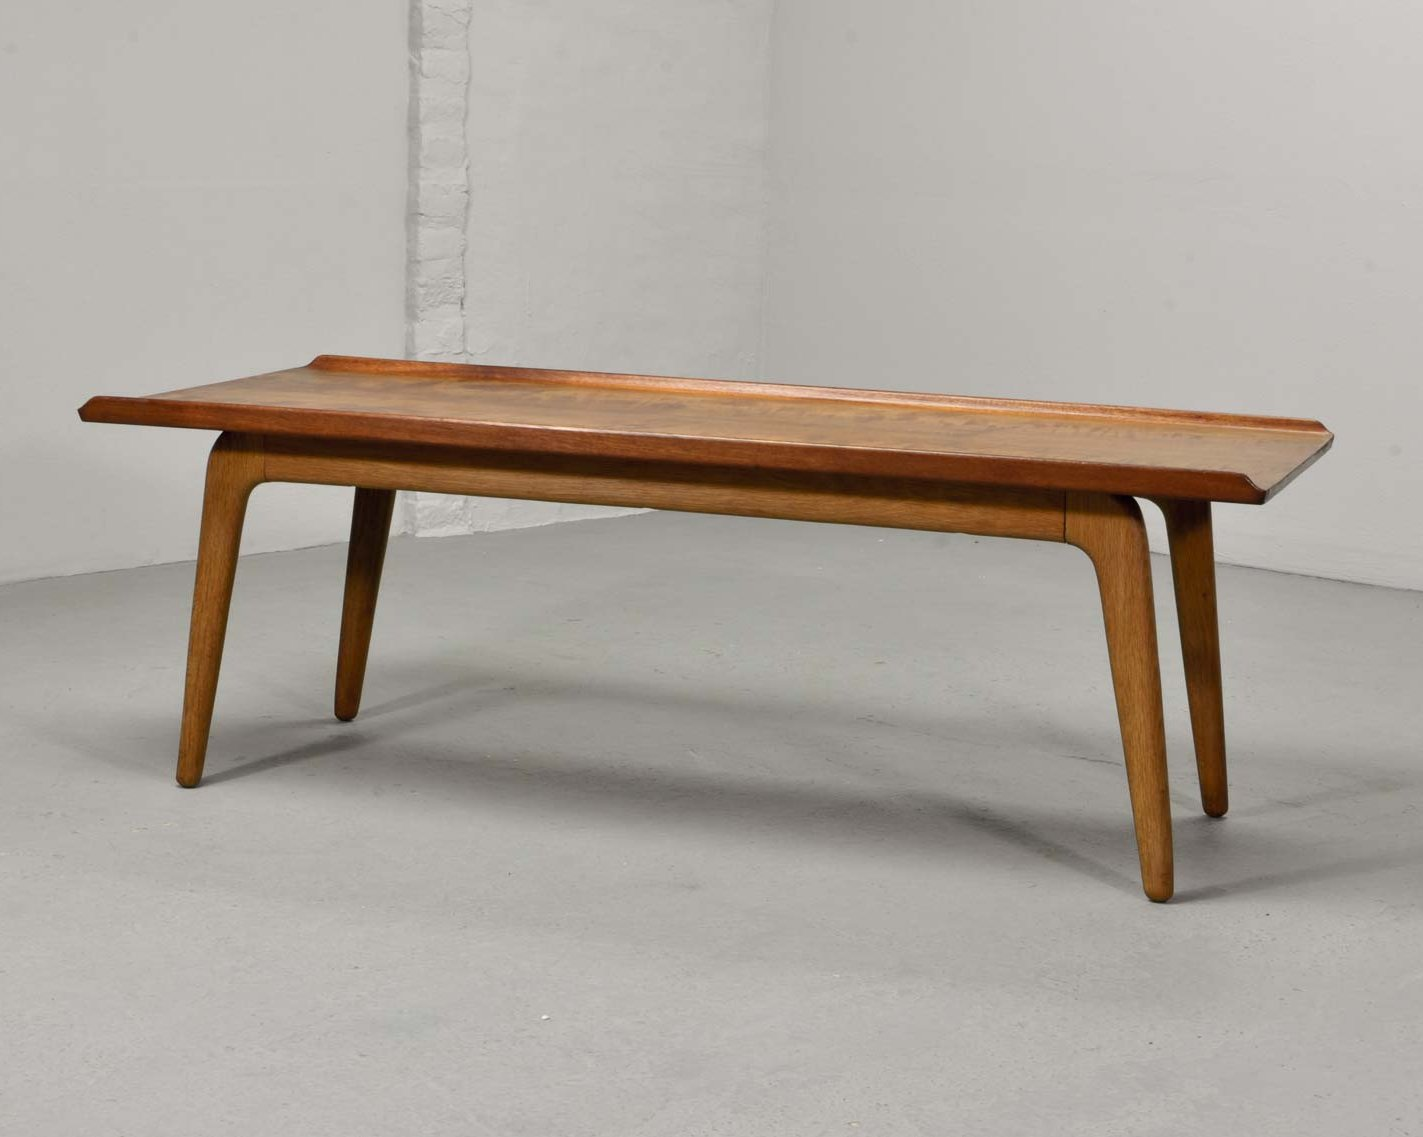 Mid Century Dutch Design Teak Coffee Table By Aksel Bender Madsen For Bovenkamp 1960s